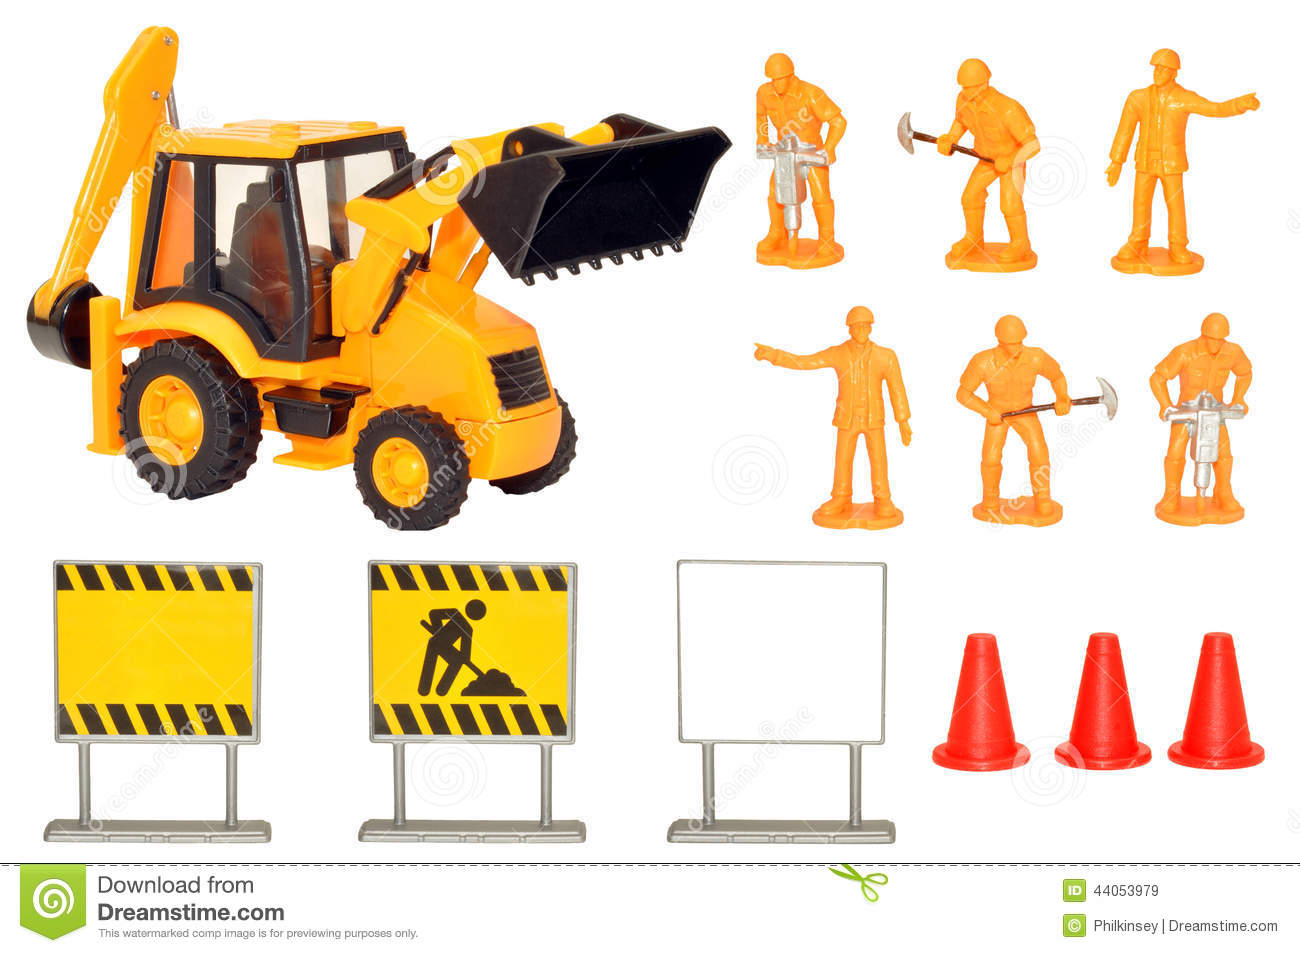 Construction Play Toys : Toy construction play set stock photo image